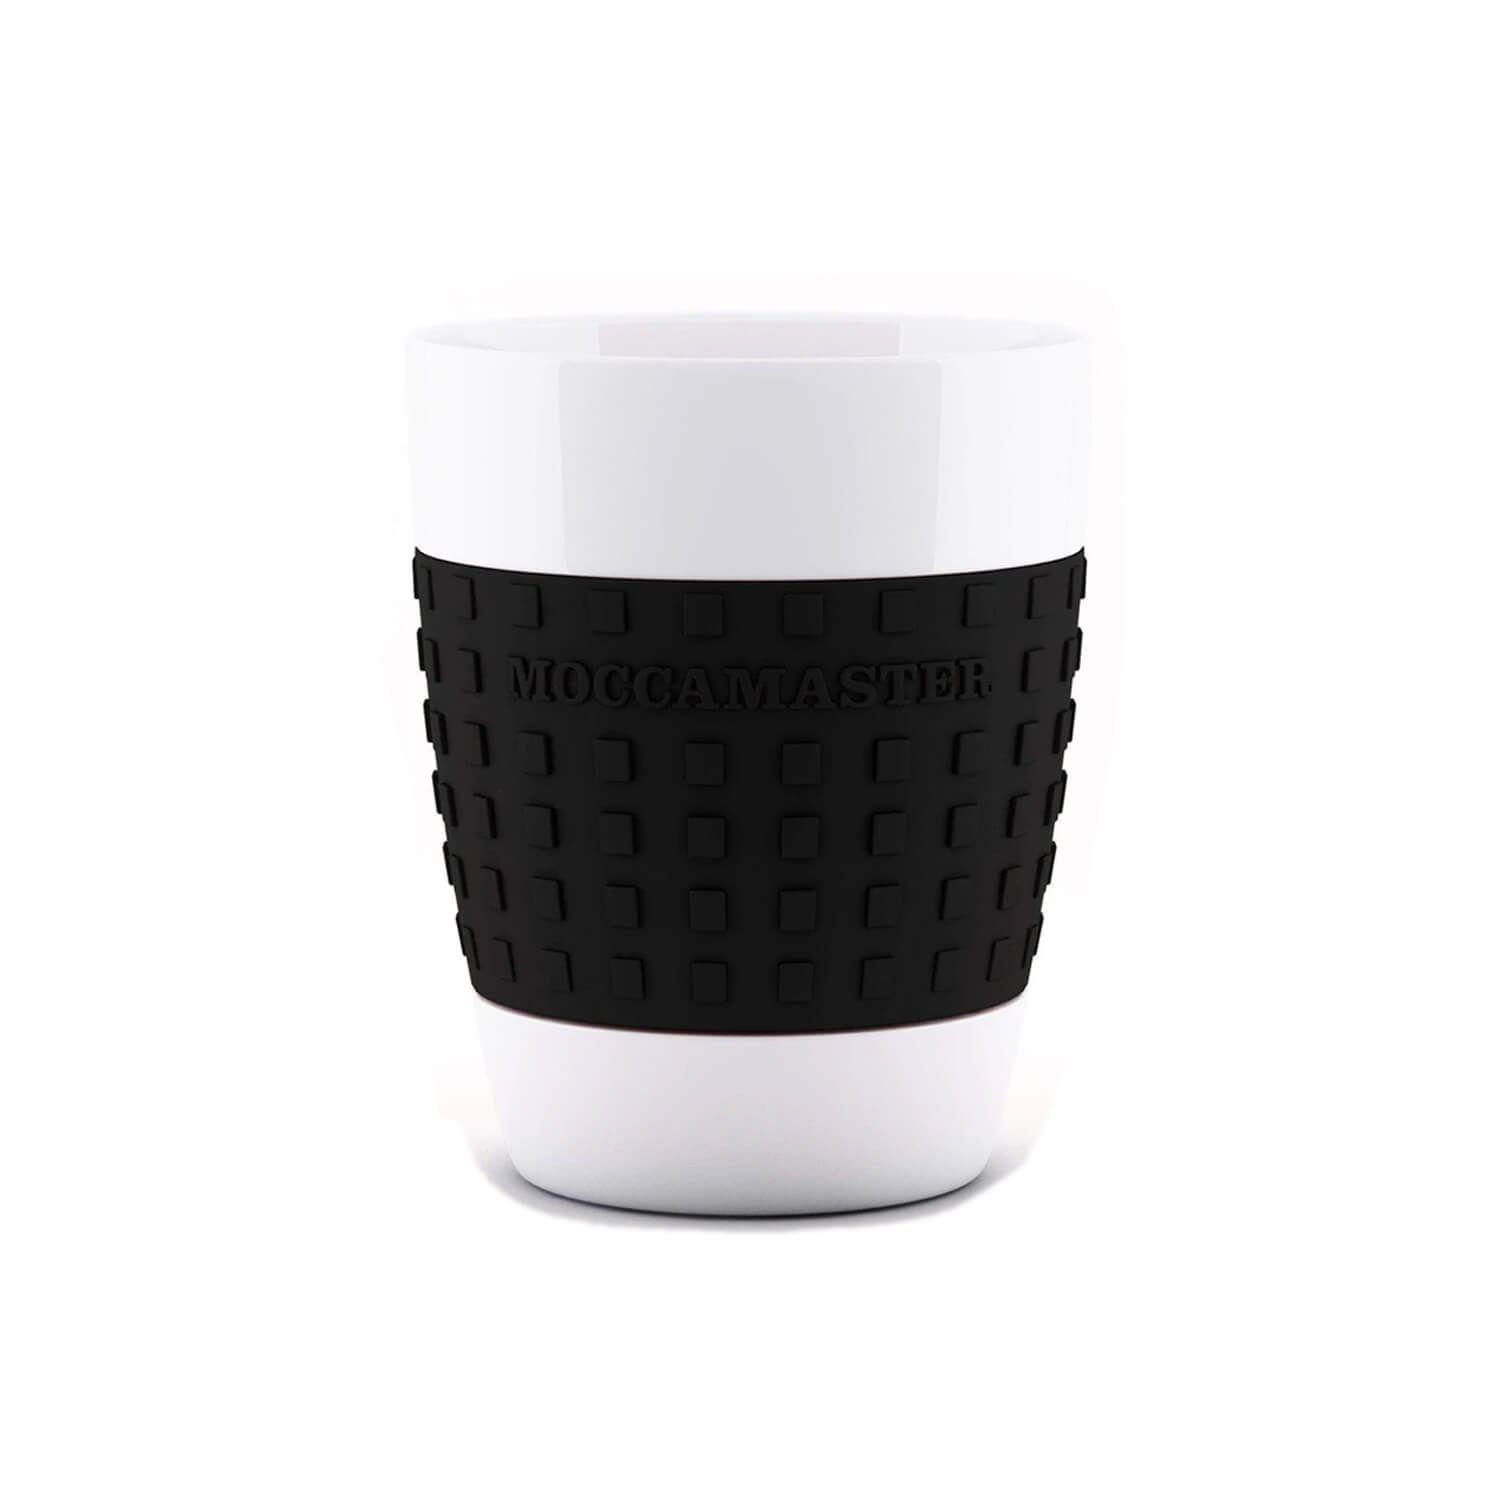 Moccamaster - Mug Cup-one Black